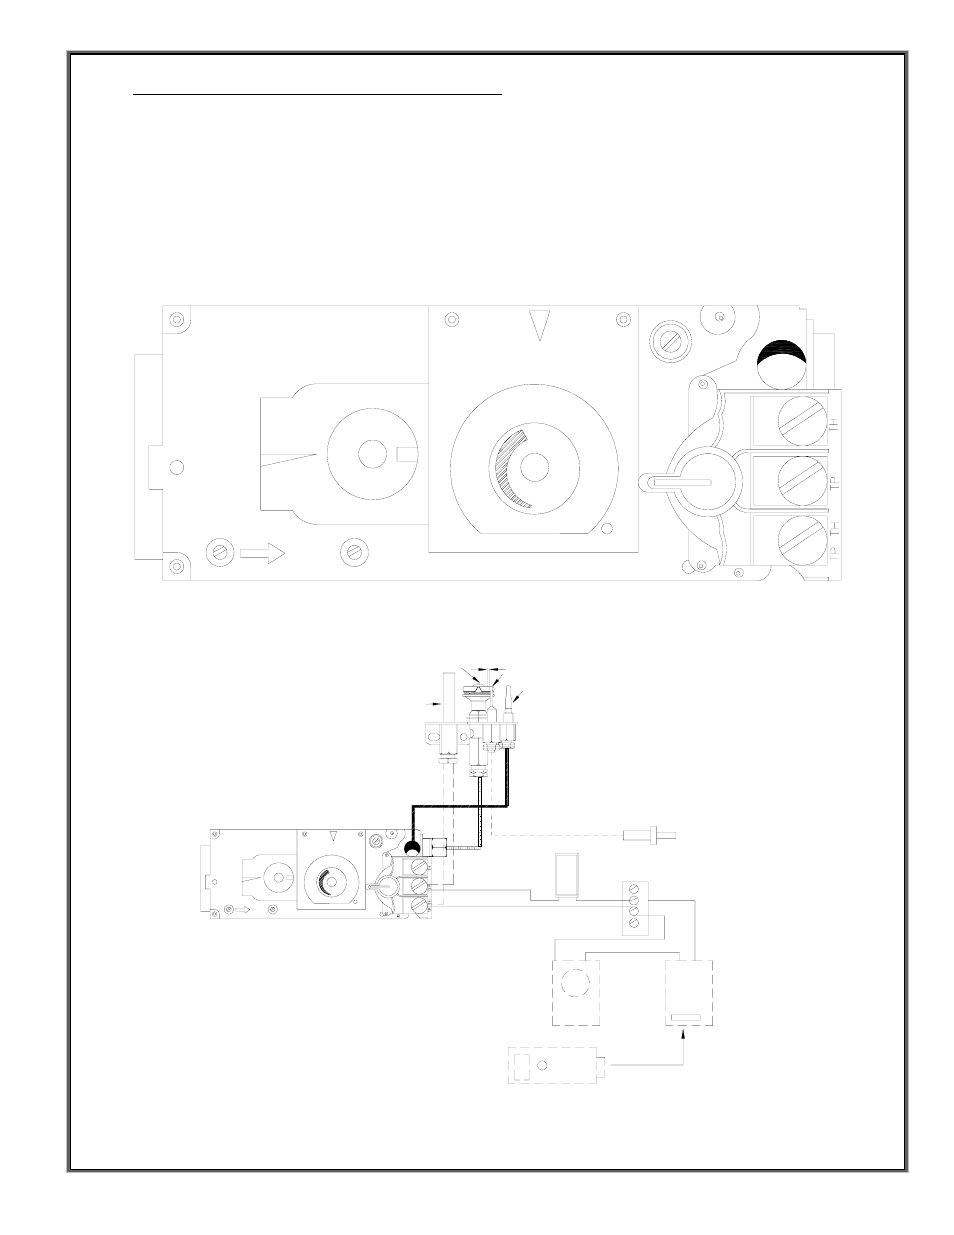 medium resolution of 1998 vw beetle fuse diagram